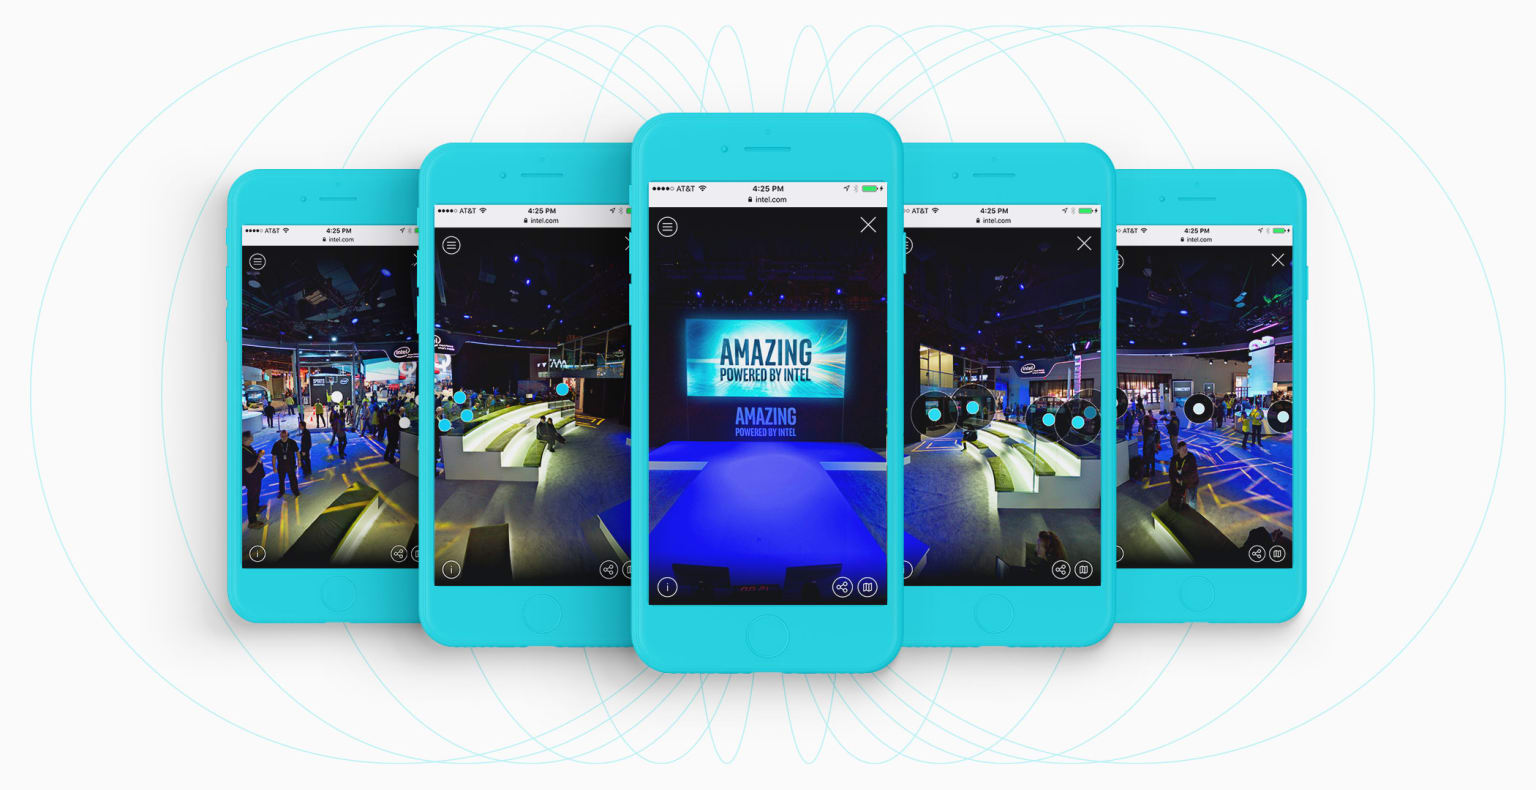 CES 360° Web Experience